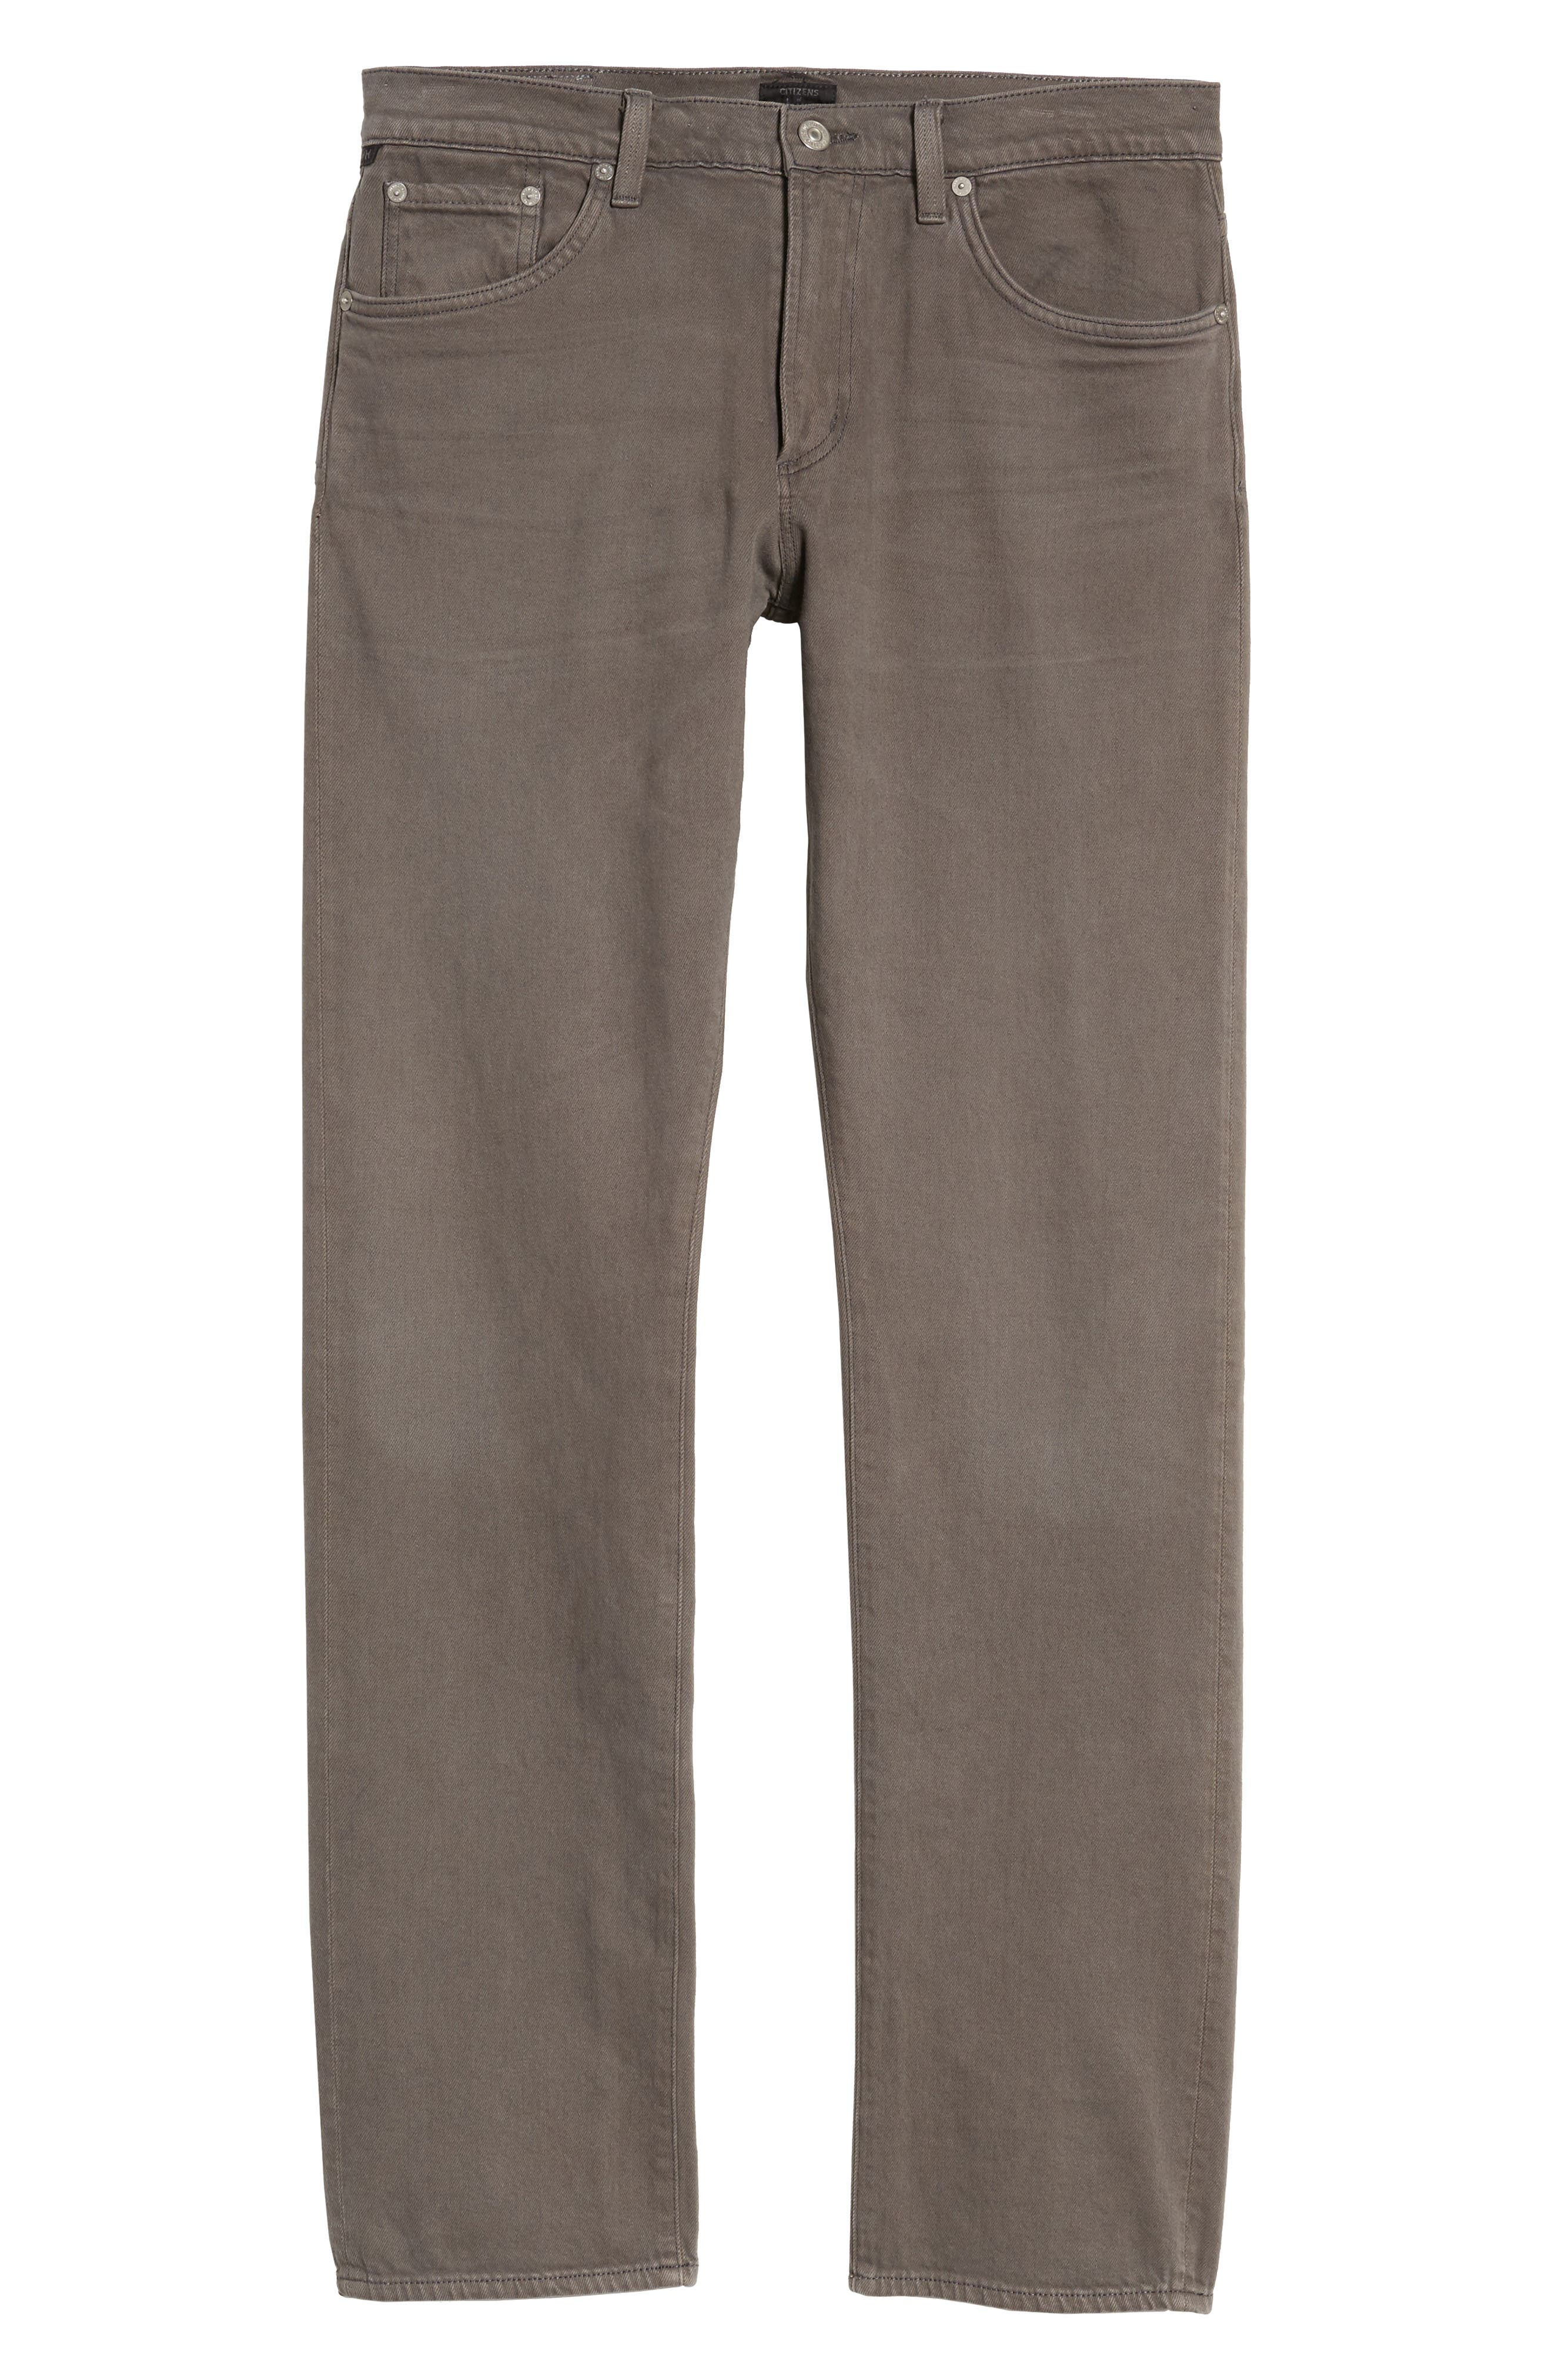 CITIZENS OF HUMANITY,                             Core Slim Fit Jeans,                             Alternate thumbnail 6, color,                             FALLBROOK